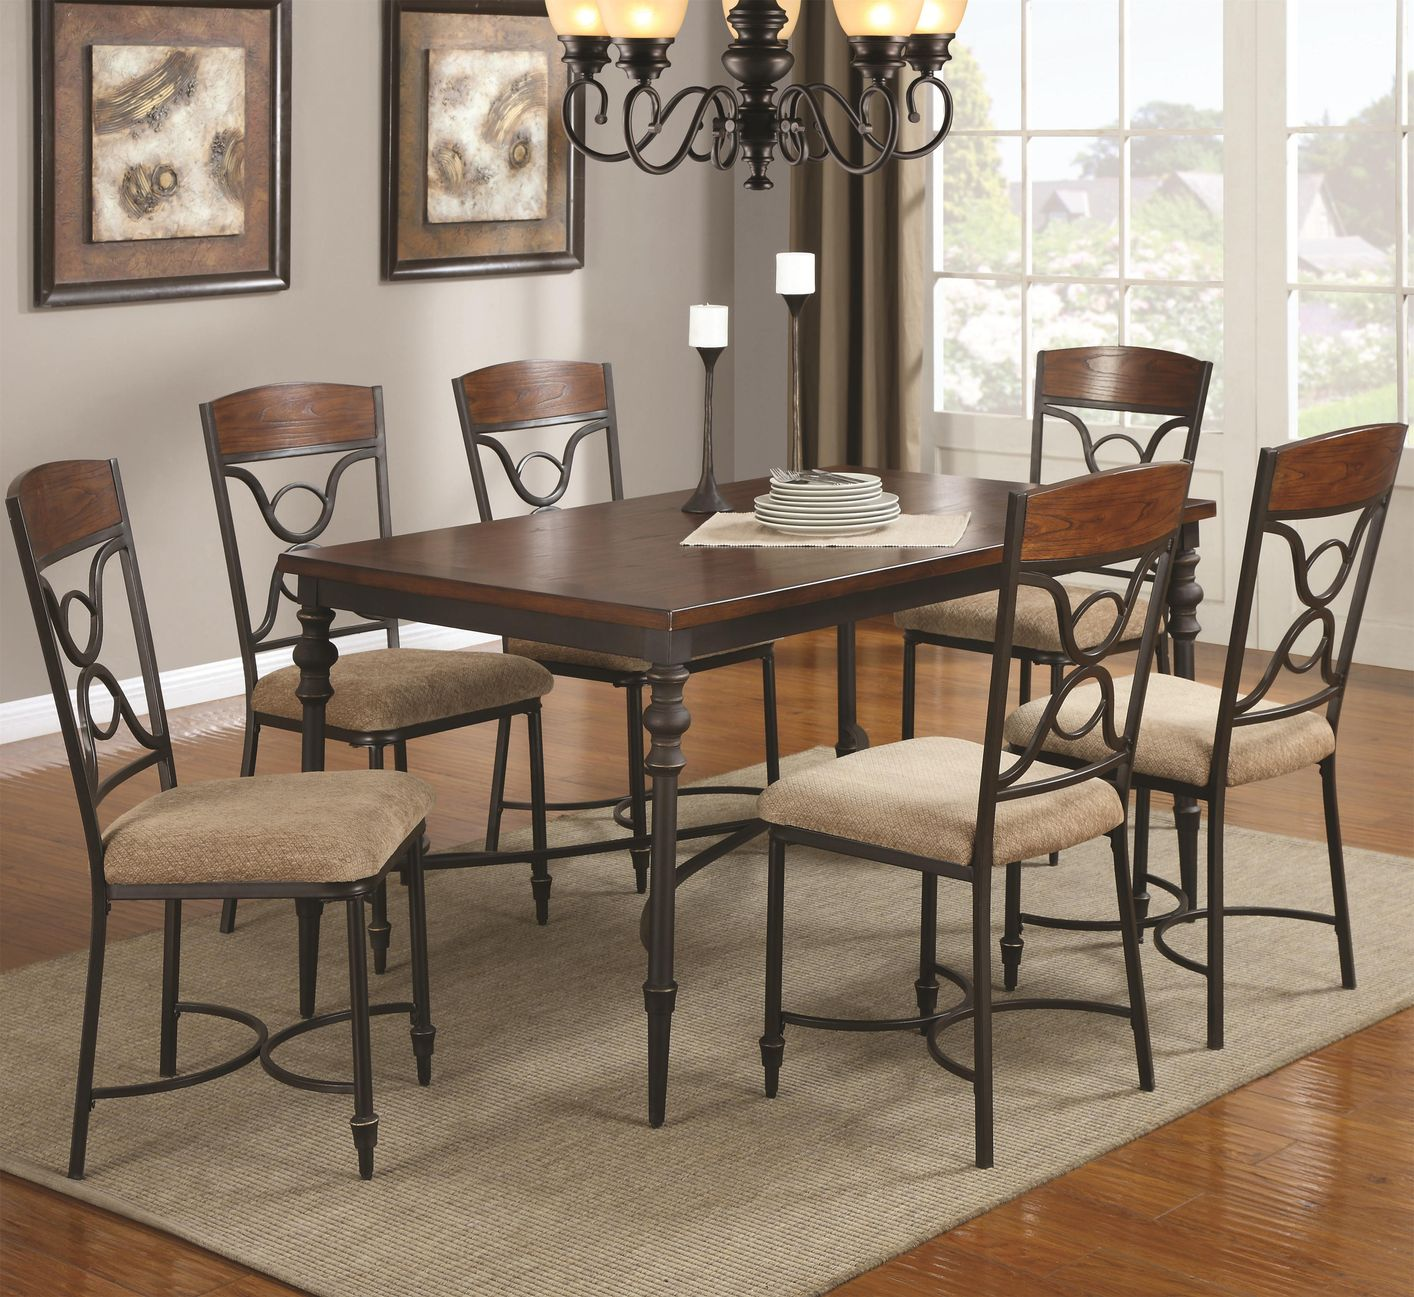 klaus cherry metal and wood dining table set - steal-a-sofa